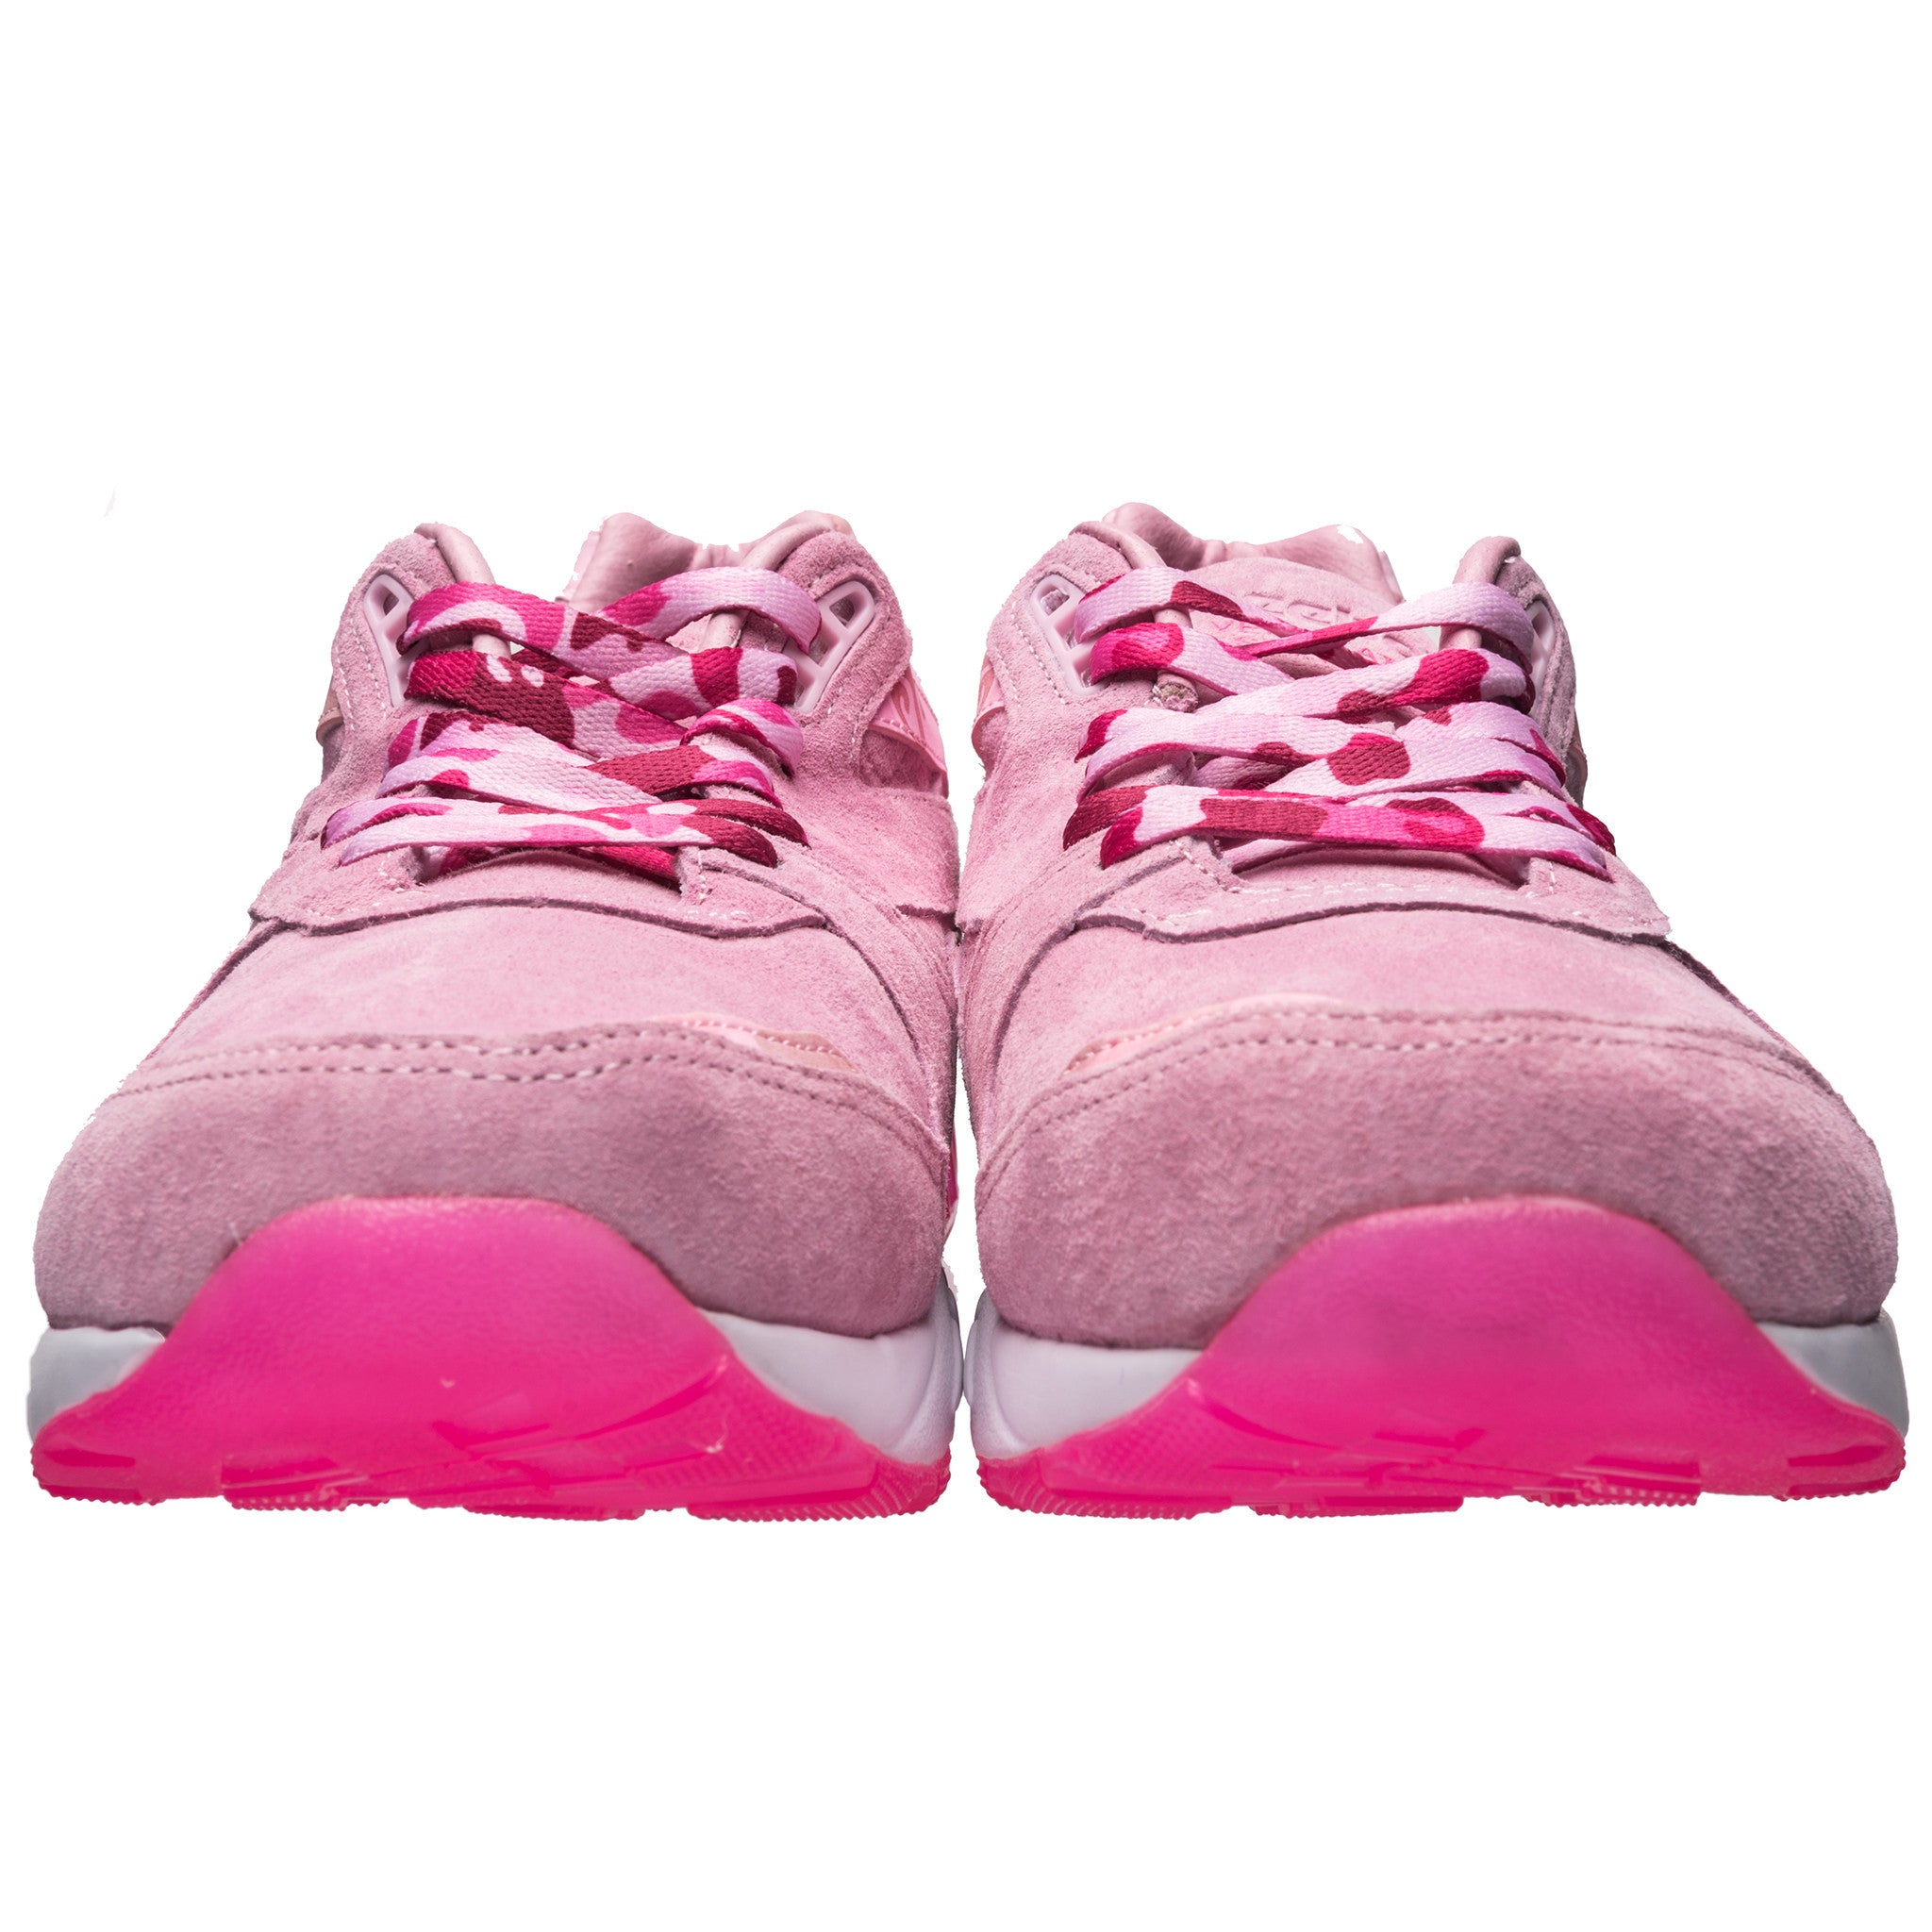 Ventilator Supreme Cam'Ron